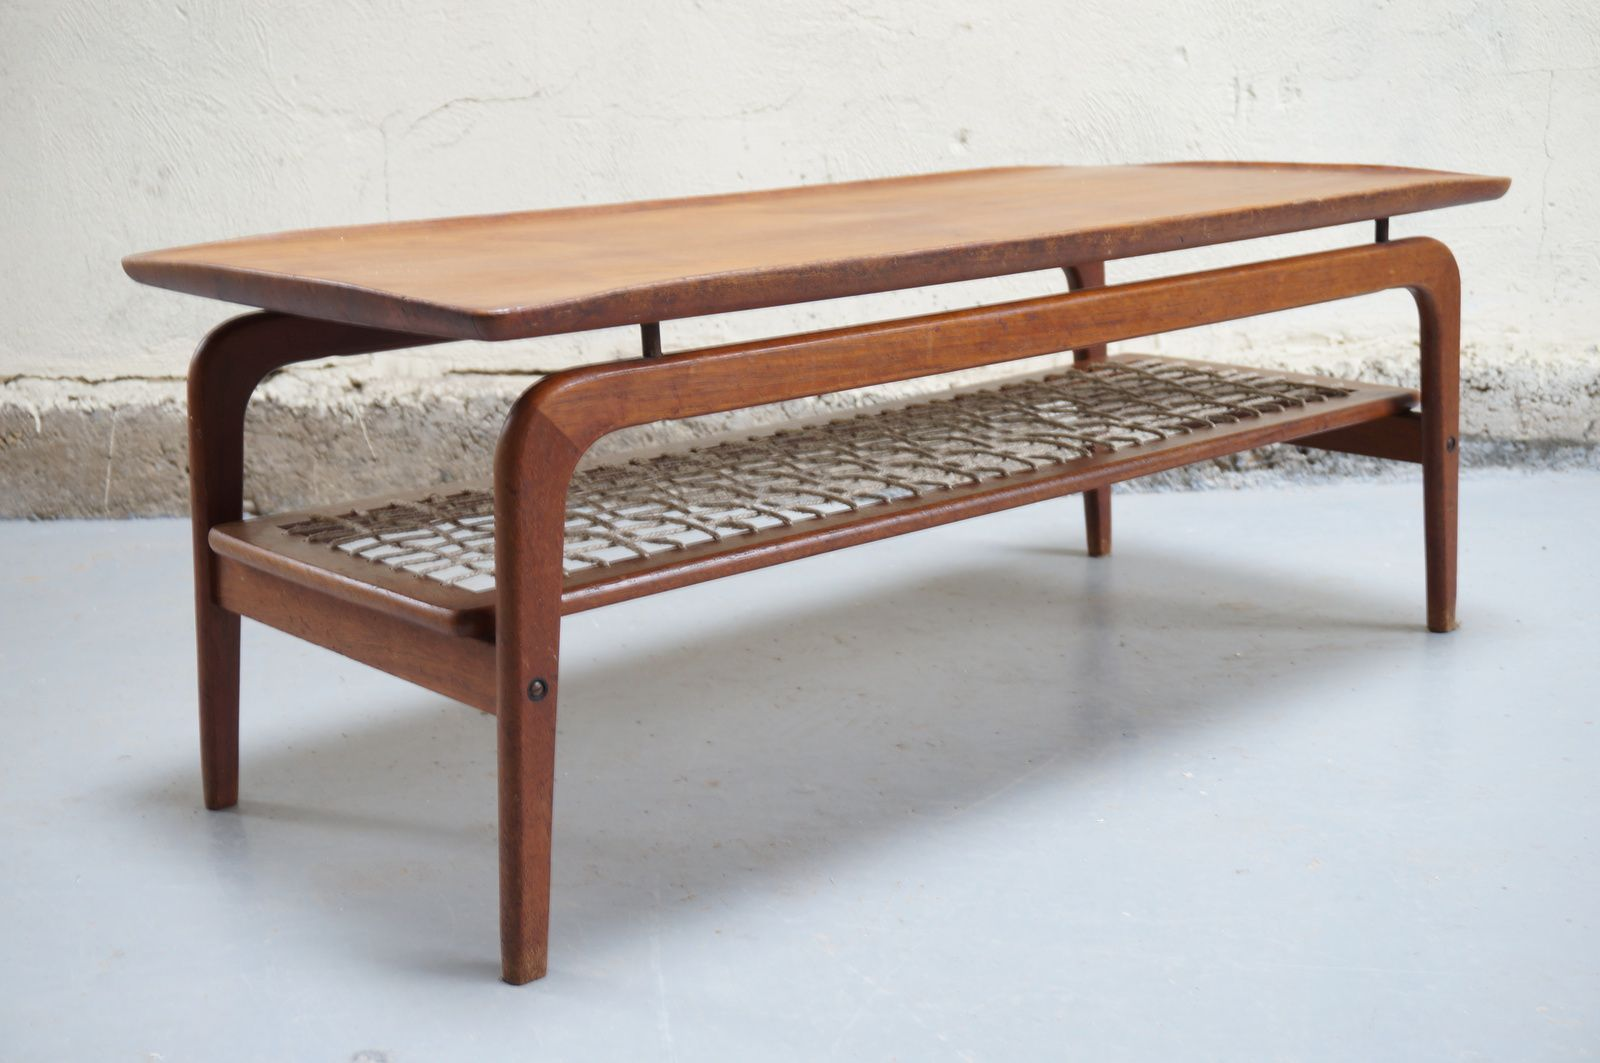 Table basse scandinave de salon danois teck design ann es for Table basse retro design